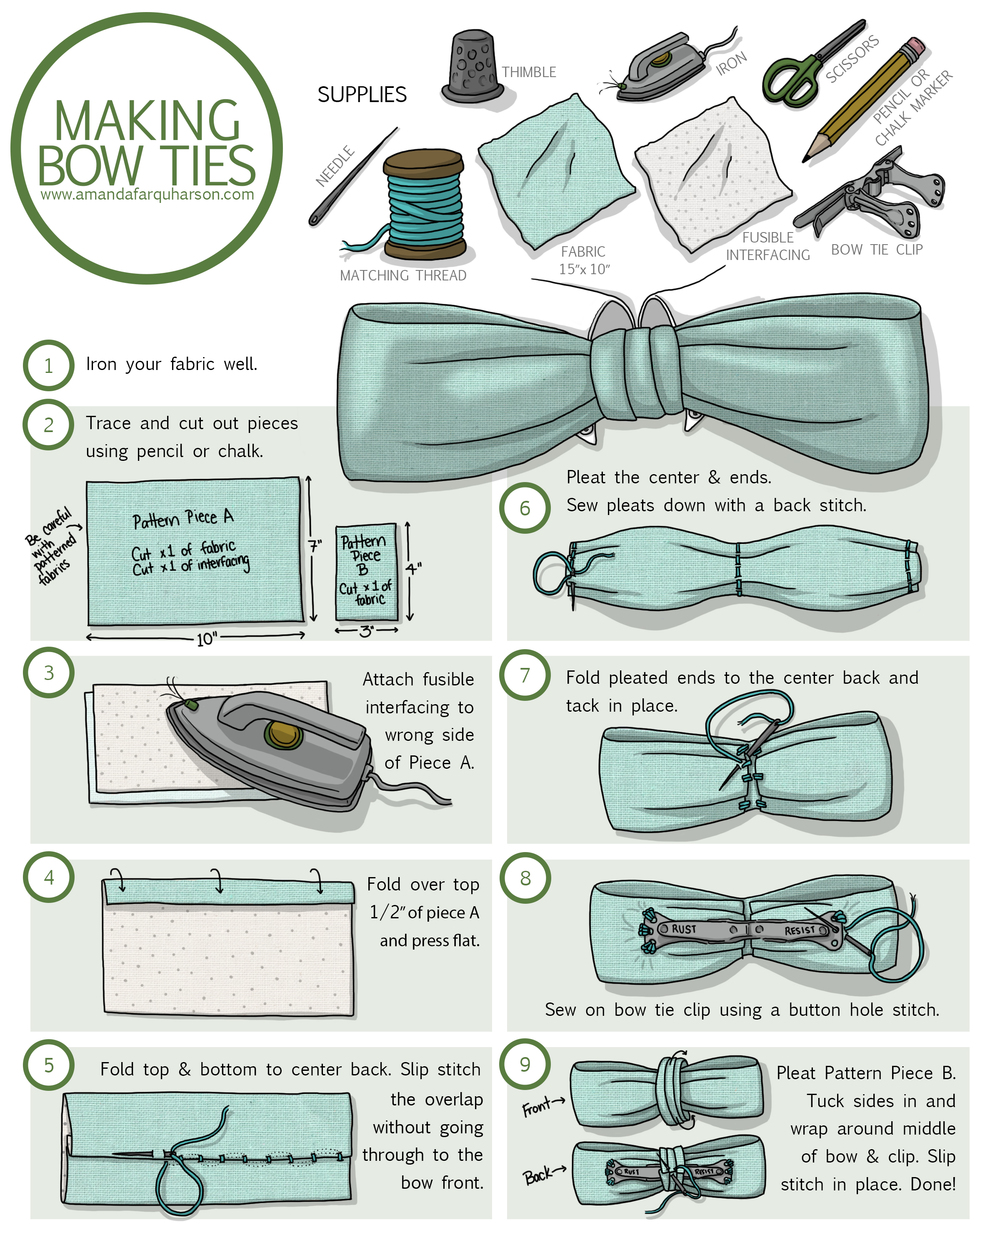 Images of How To Tie A Tie Like A Ninja - Millions Ideas How To Guides For Dummies Fress